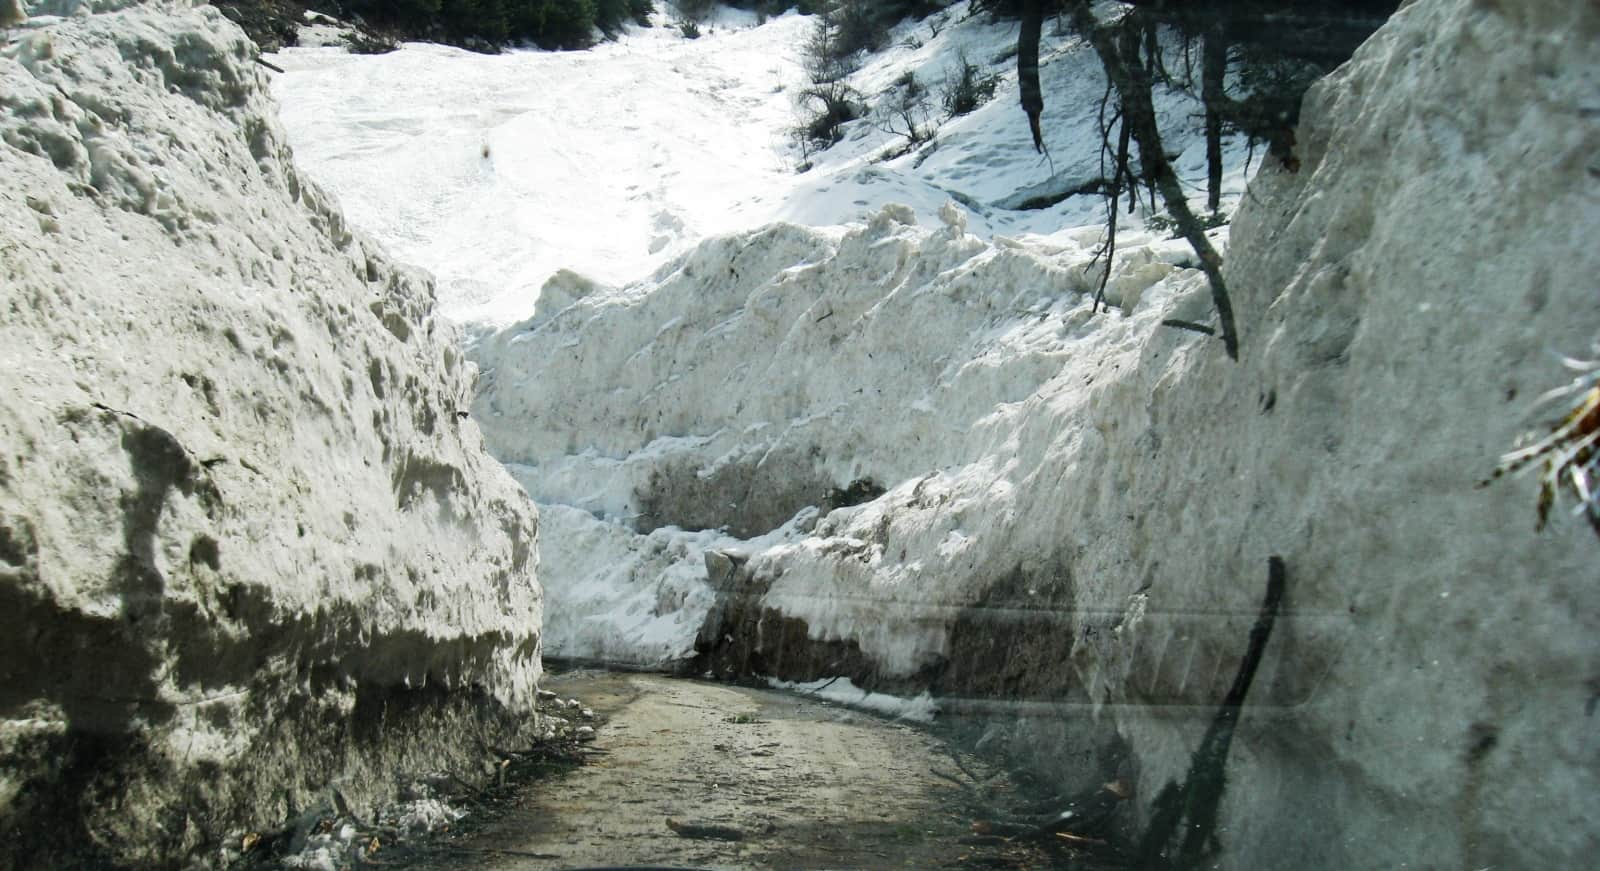 Snow at Harsil (Sukhi Top) - Dharali, a place to enjoy Snowfall in Uttarakhand